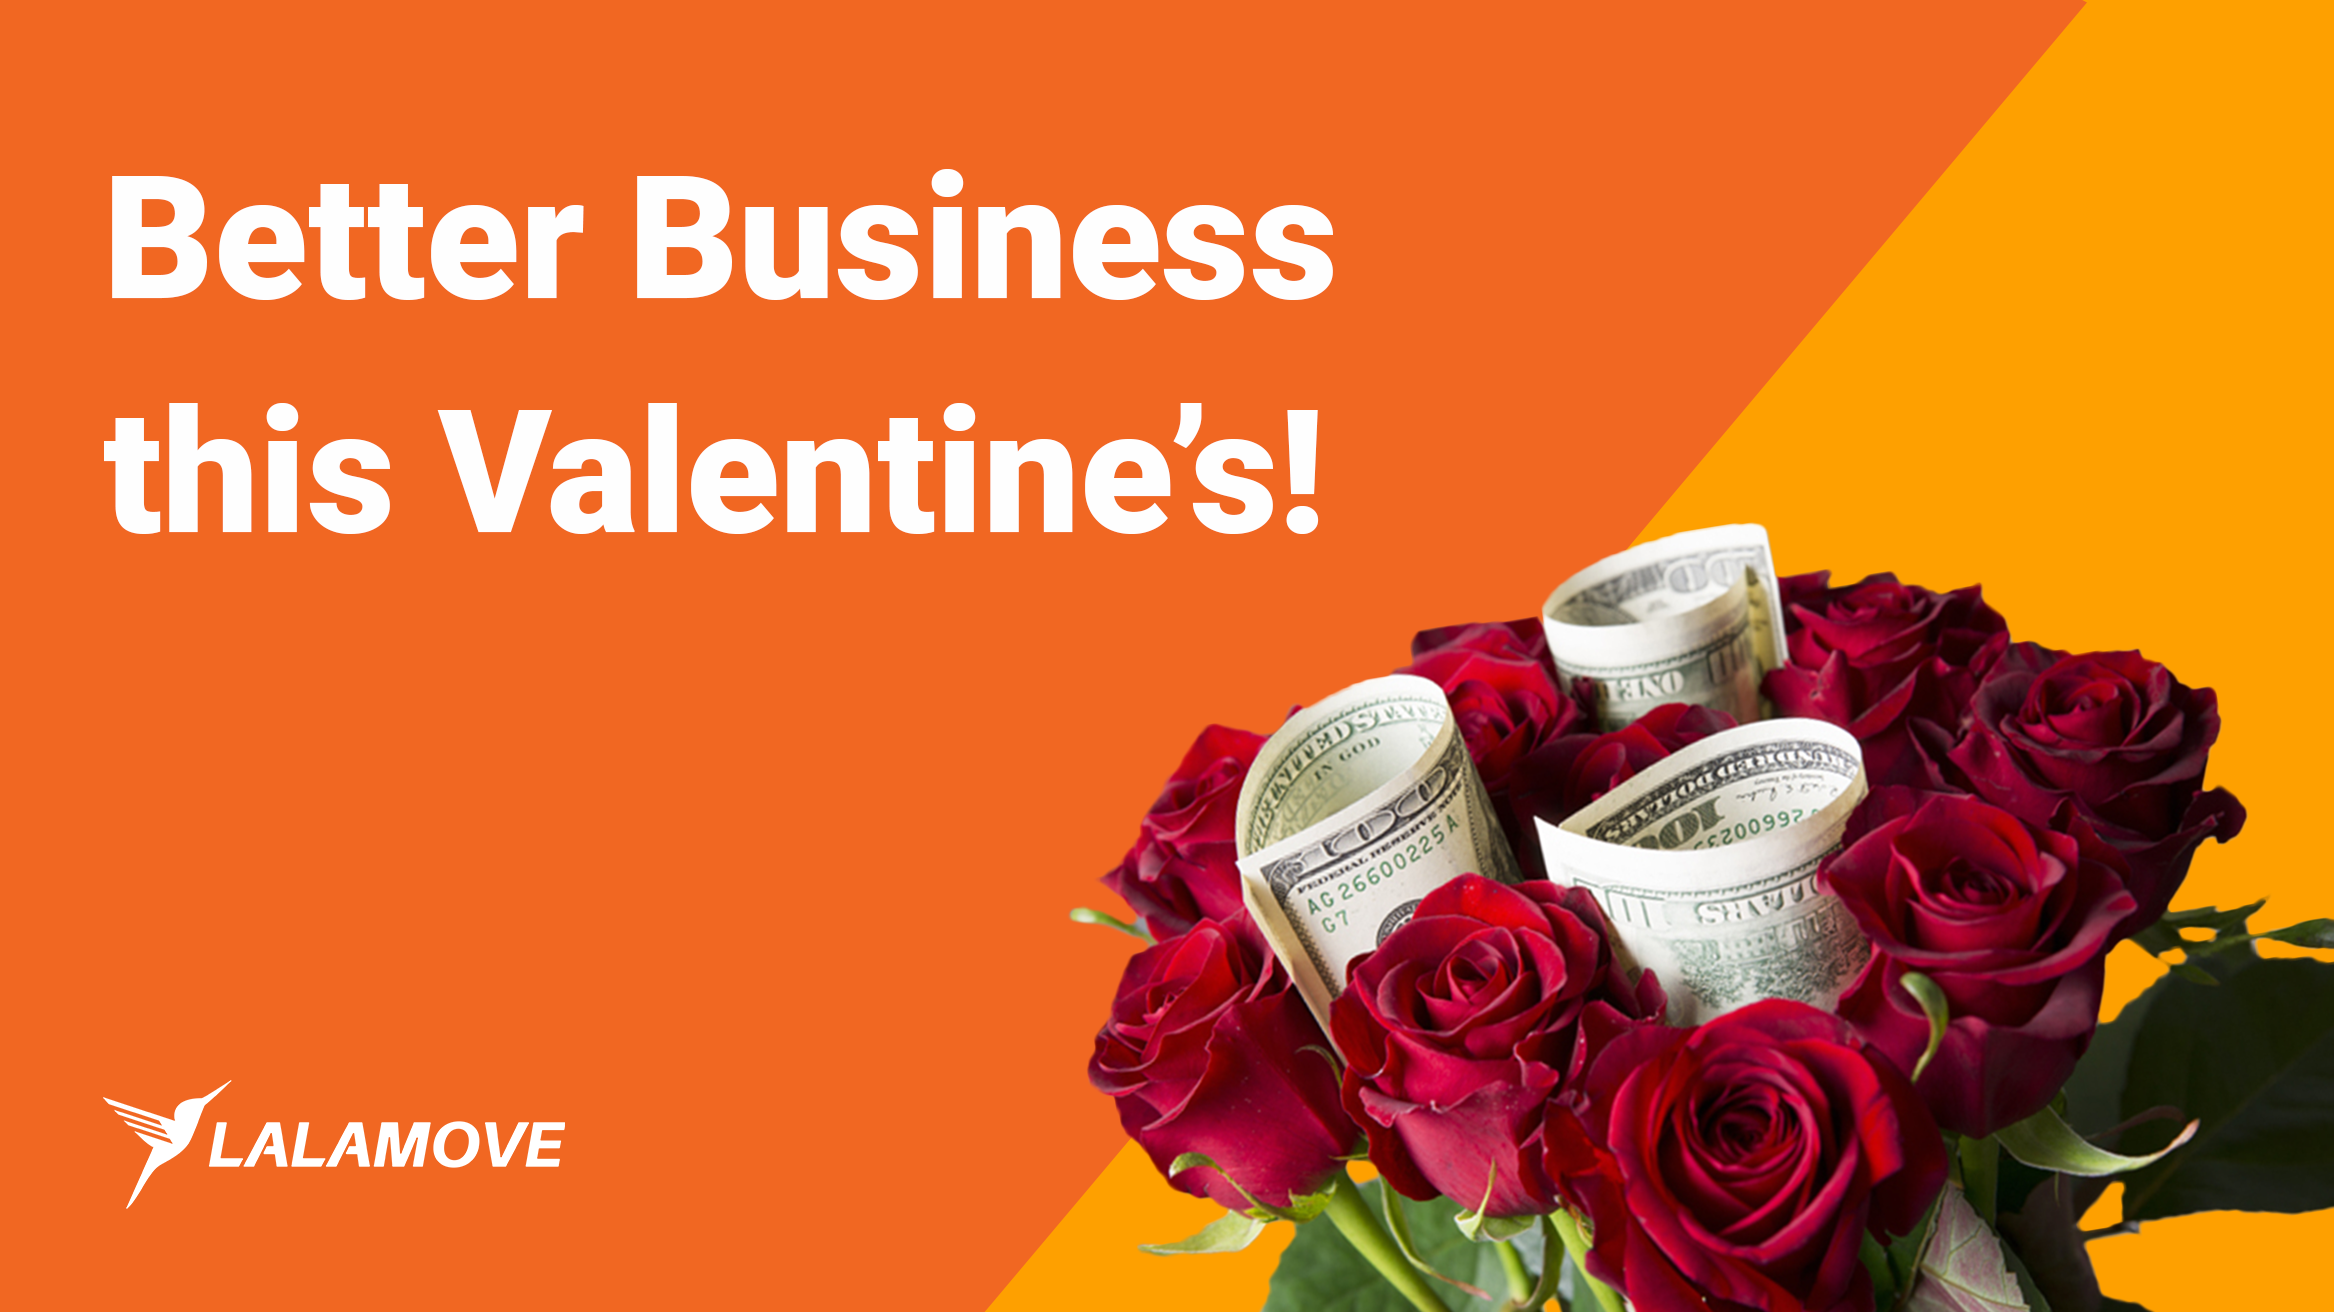 3 Tips on How You to Maximize Valentine's for Your Business